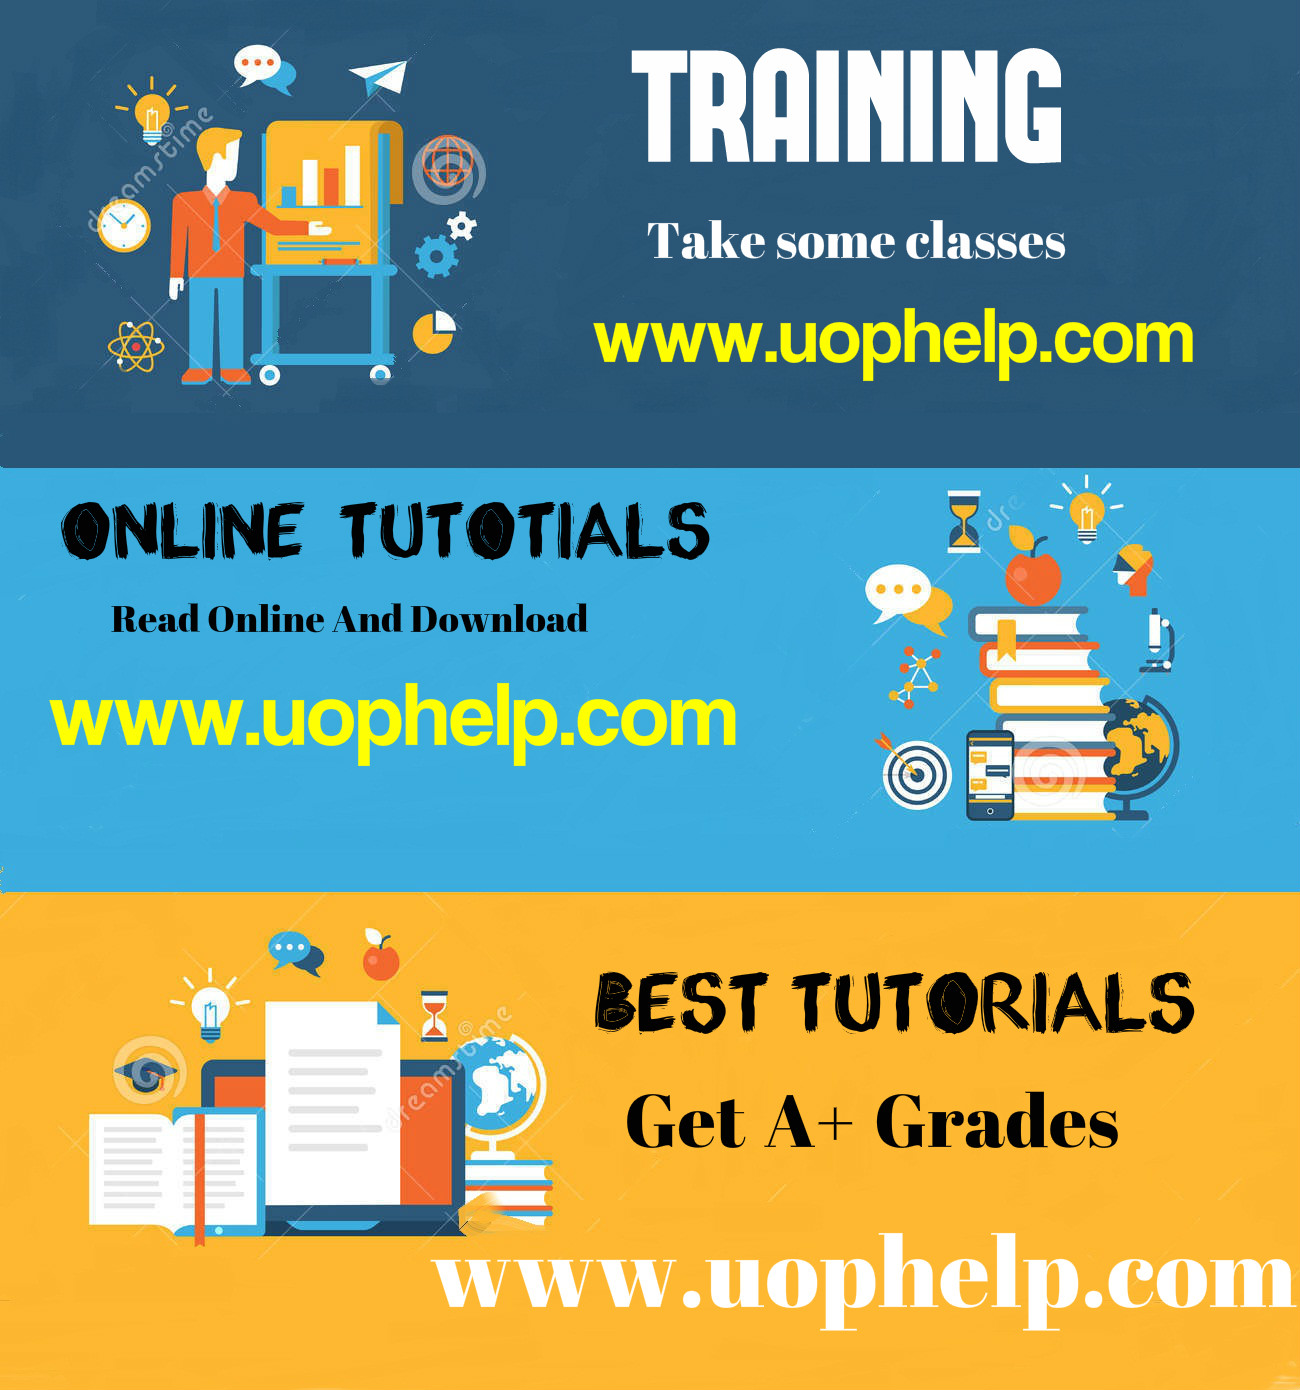 psy expert tutor uophelp on emaze resource clinical interview section on pp 69 71 of fundamentals of abnormal psychology review the information on clinical interviews on pp 69 71